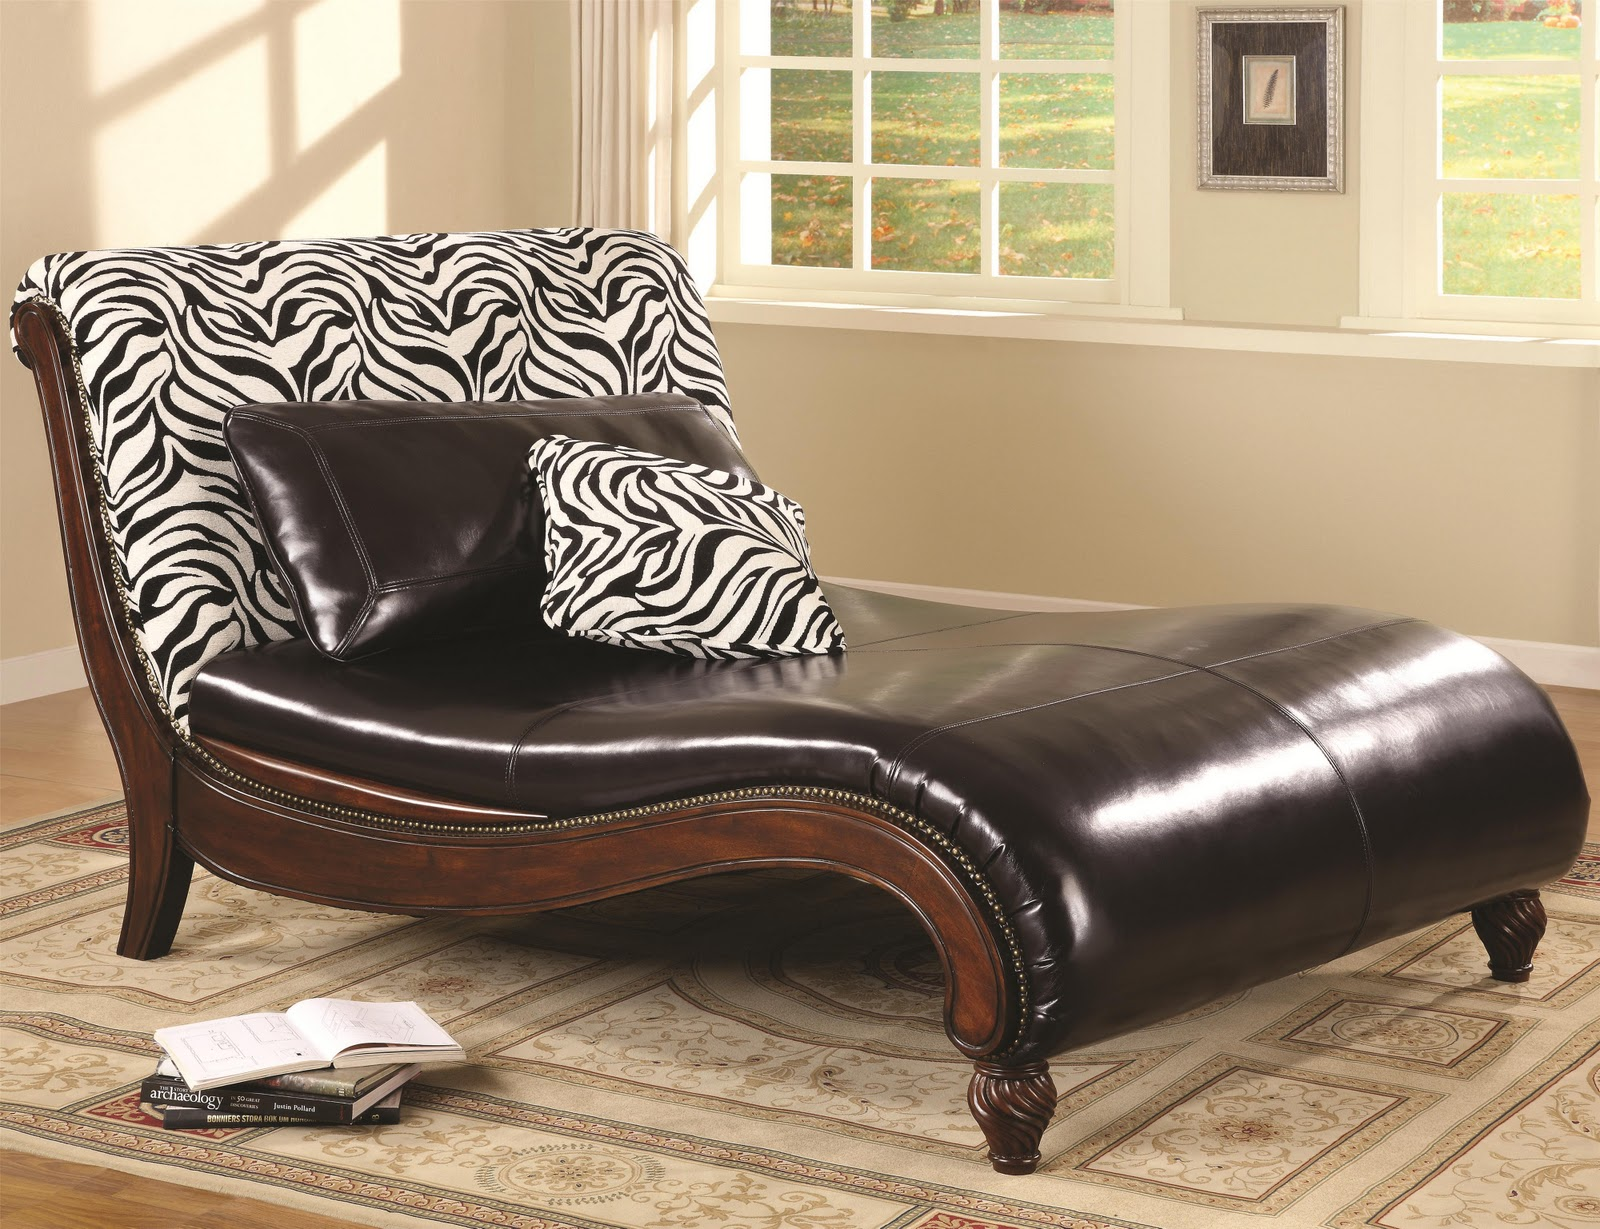 Wide Chairs Living Room Storage Chaise Lounge Rolland Leather Interior Design